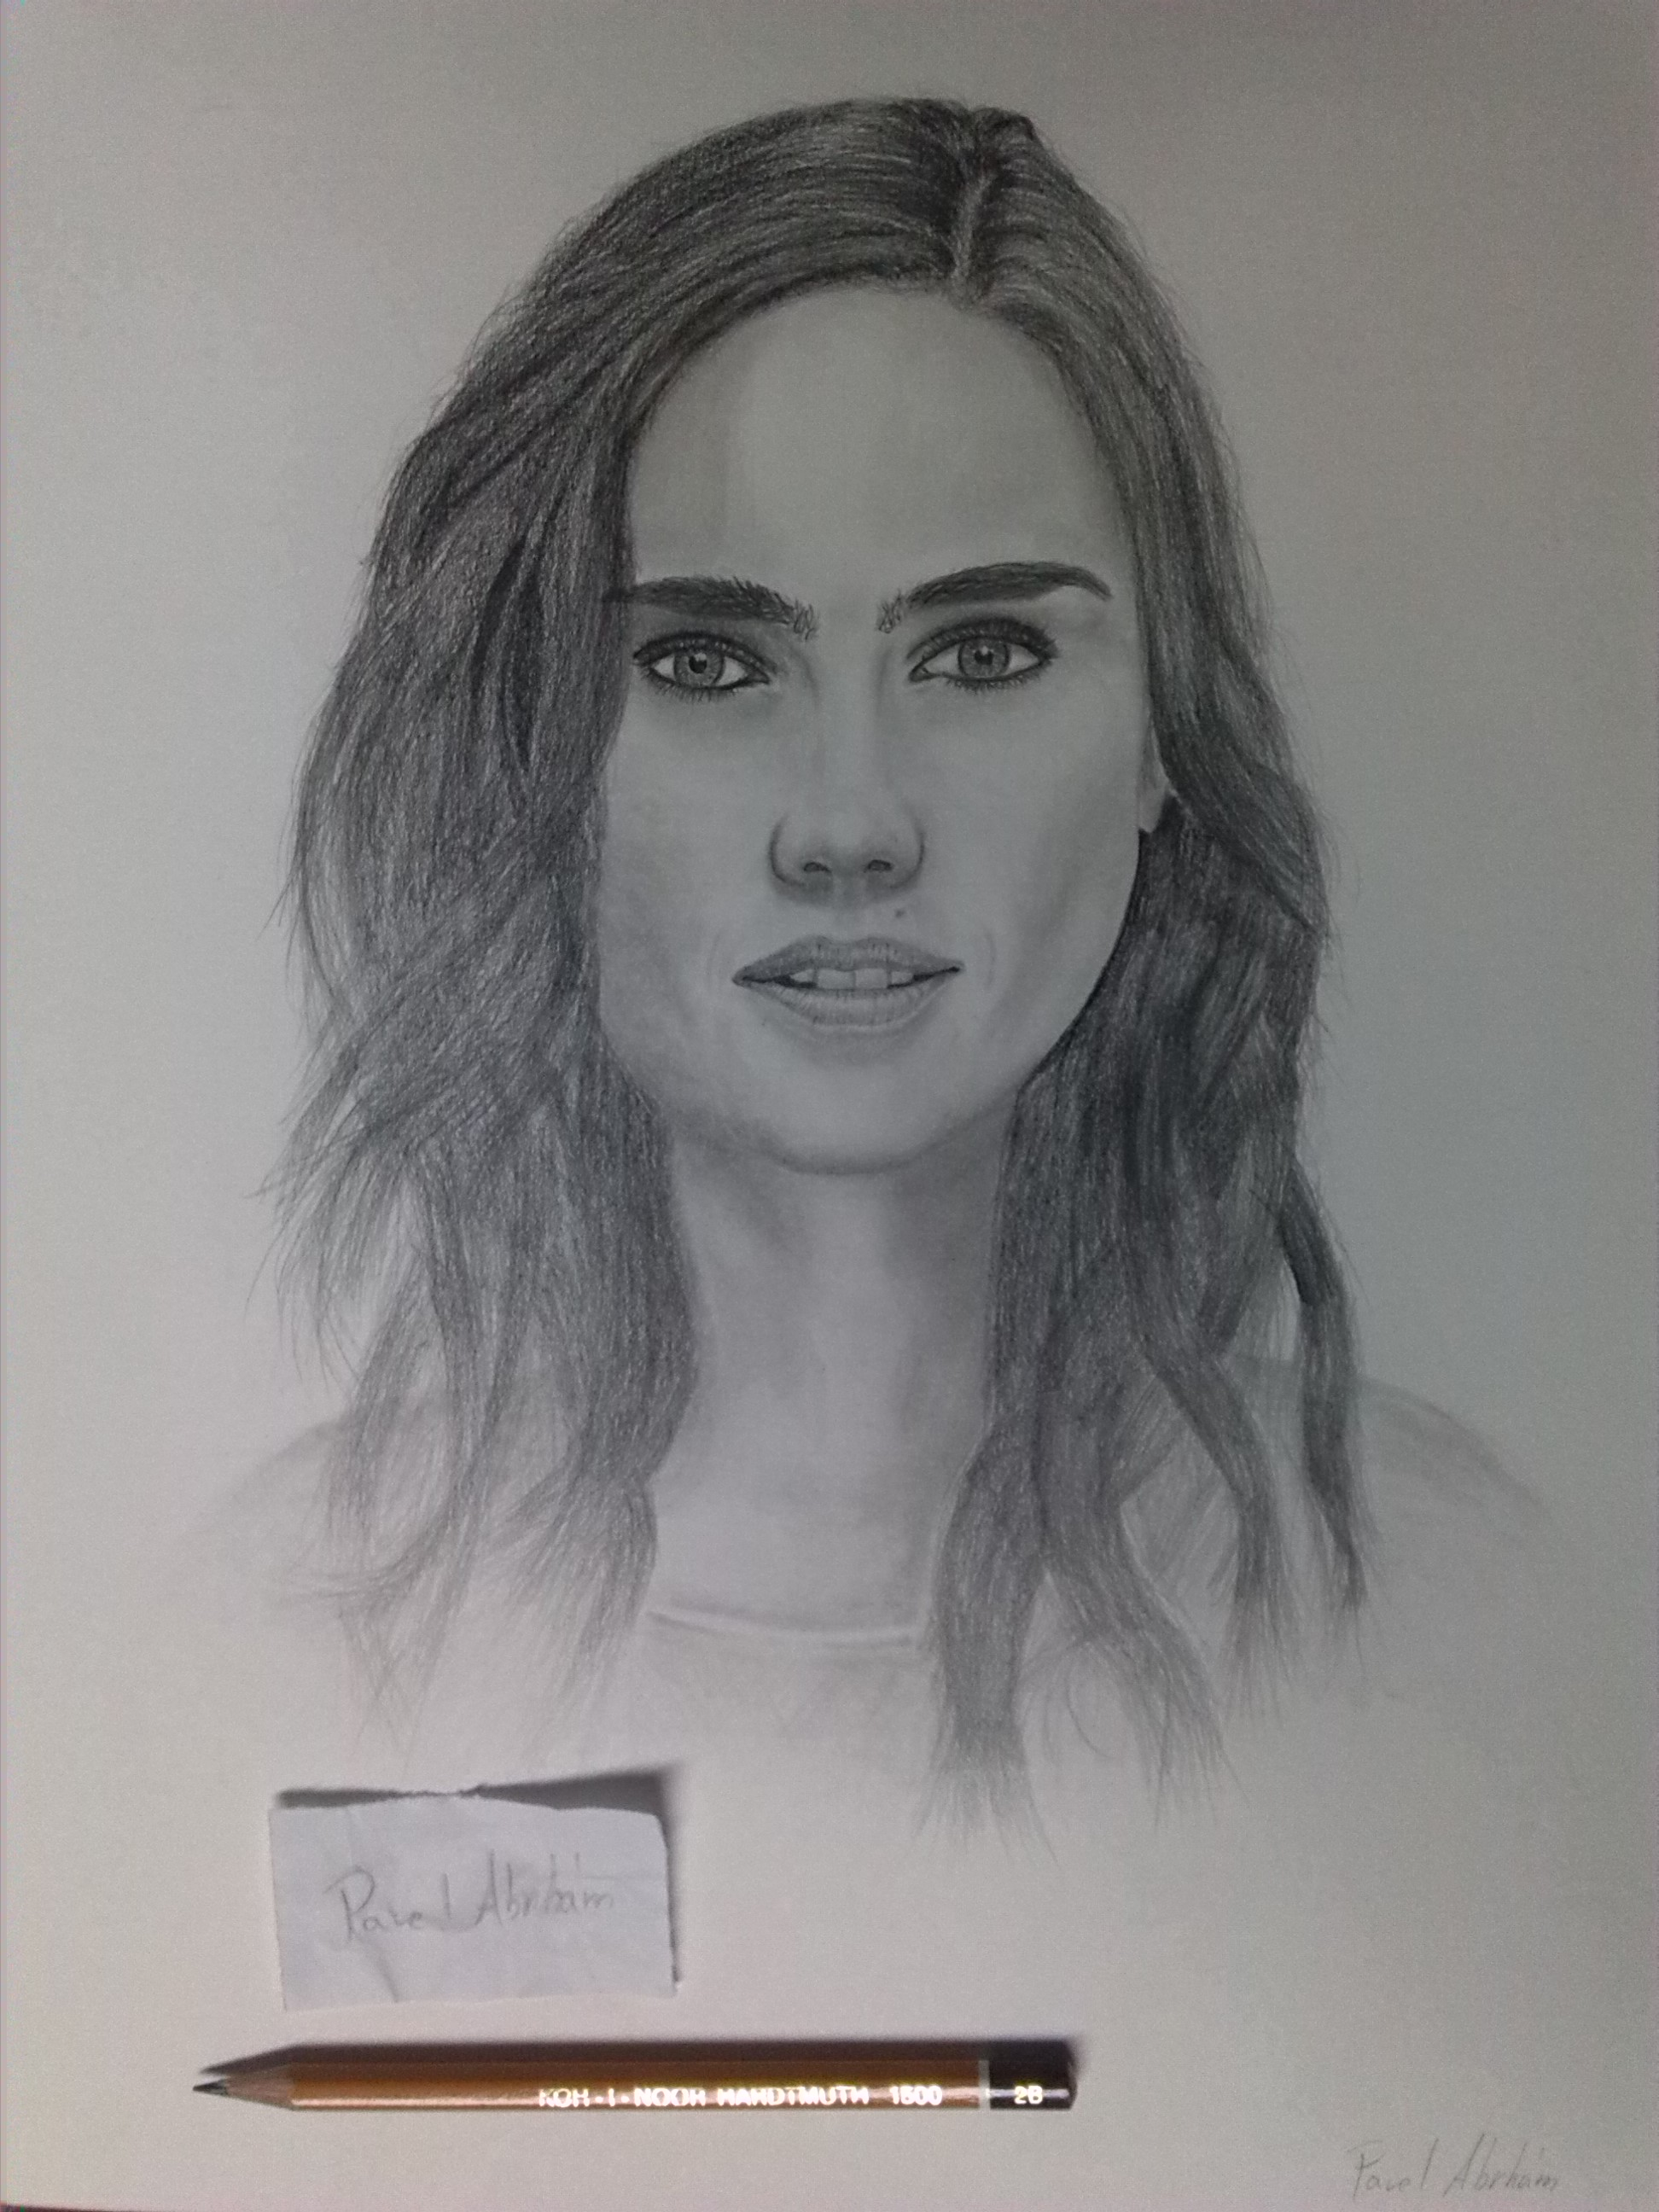 Jennifer Connelly by Pavel-Abrham